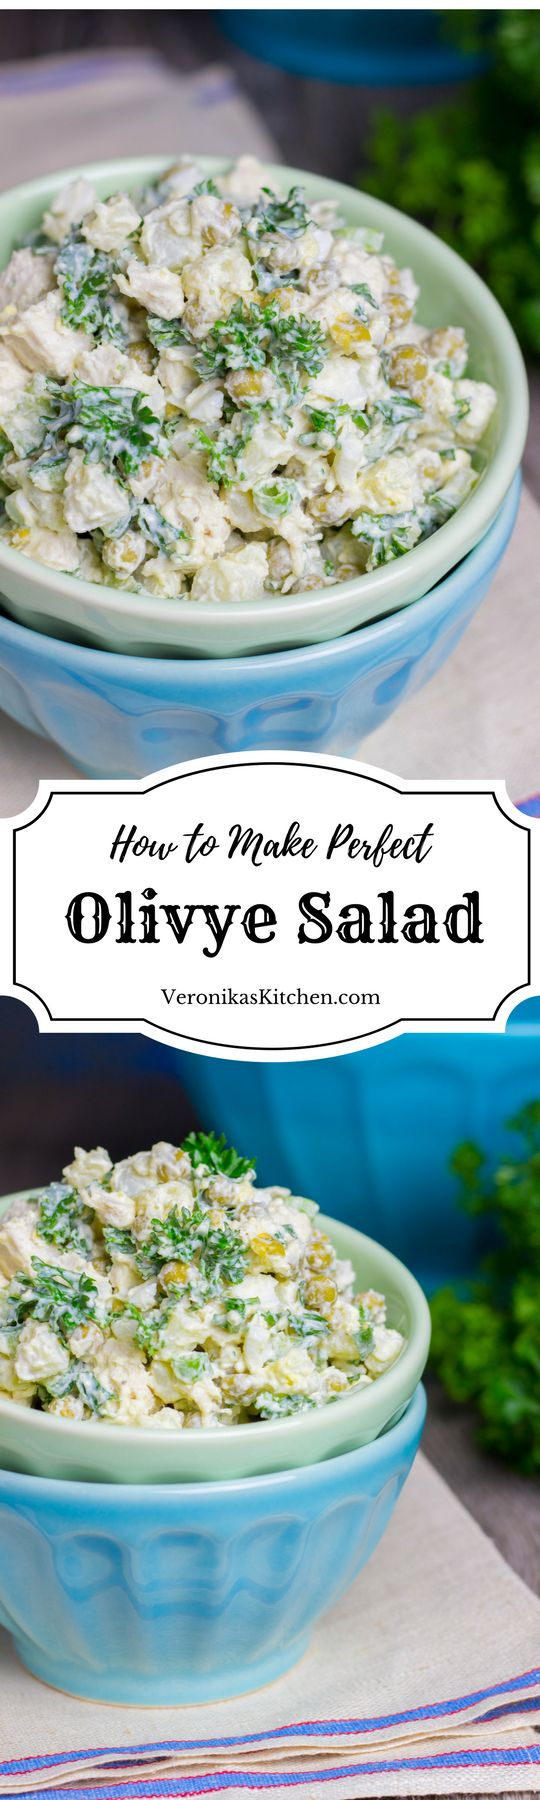 Olivye salad is a popular Russian dish that can remind you of a mix of potato salad, egg salad, and chicken salad. It will be a great idea for lunch or a side dish for dinner.